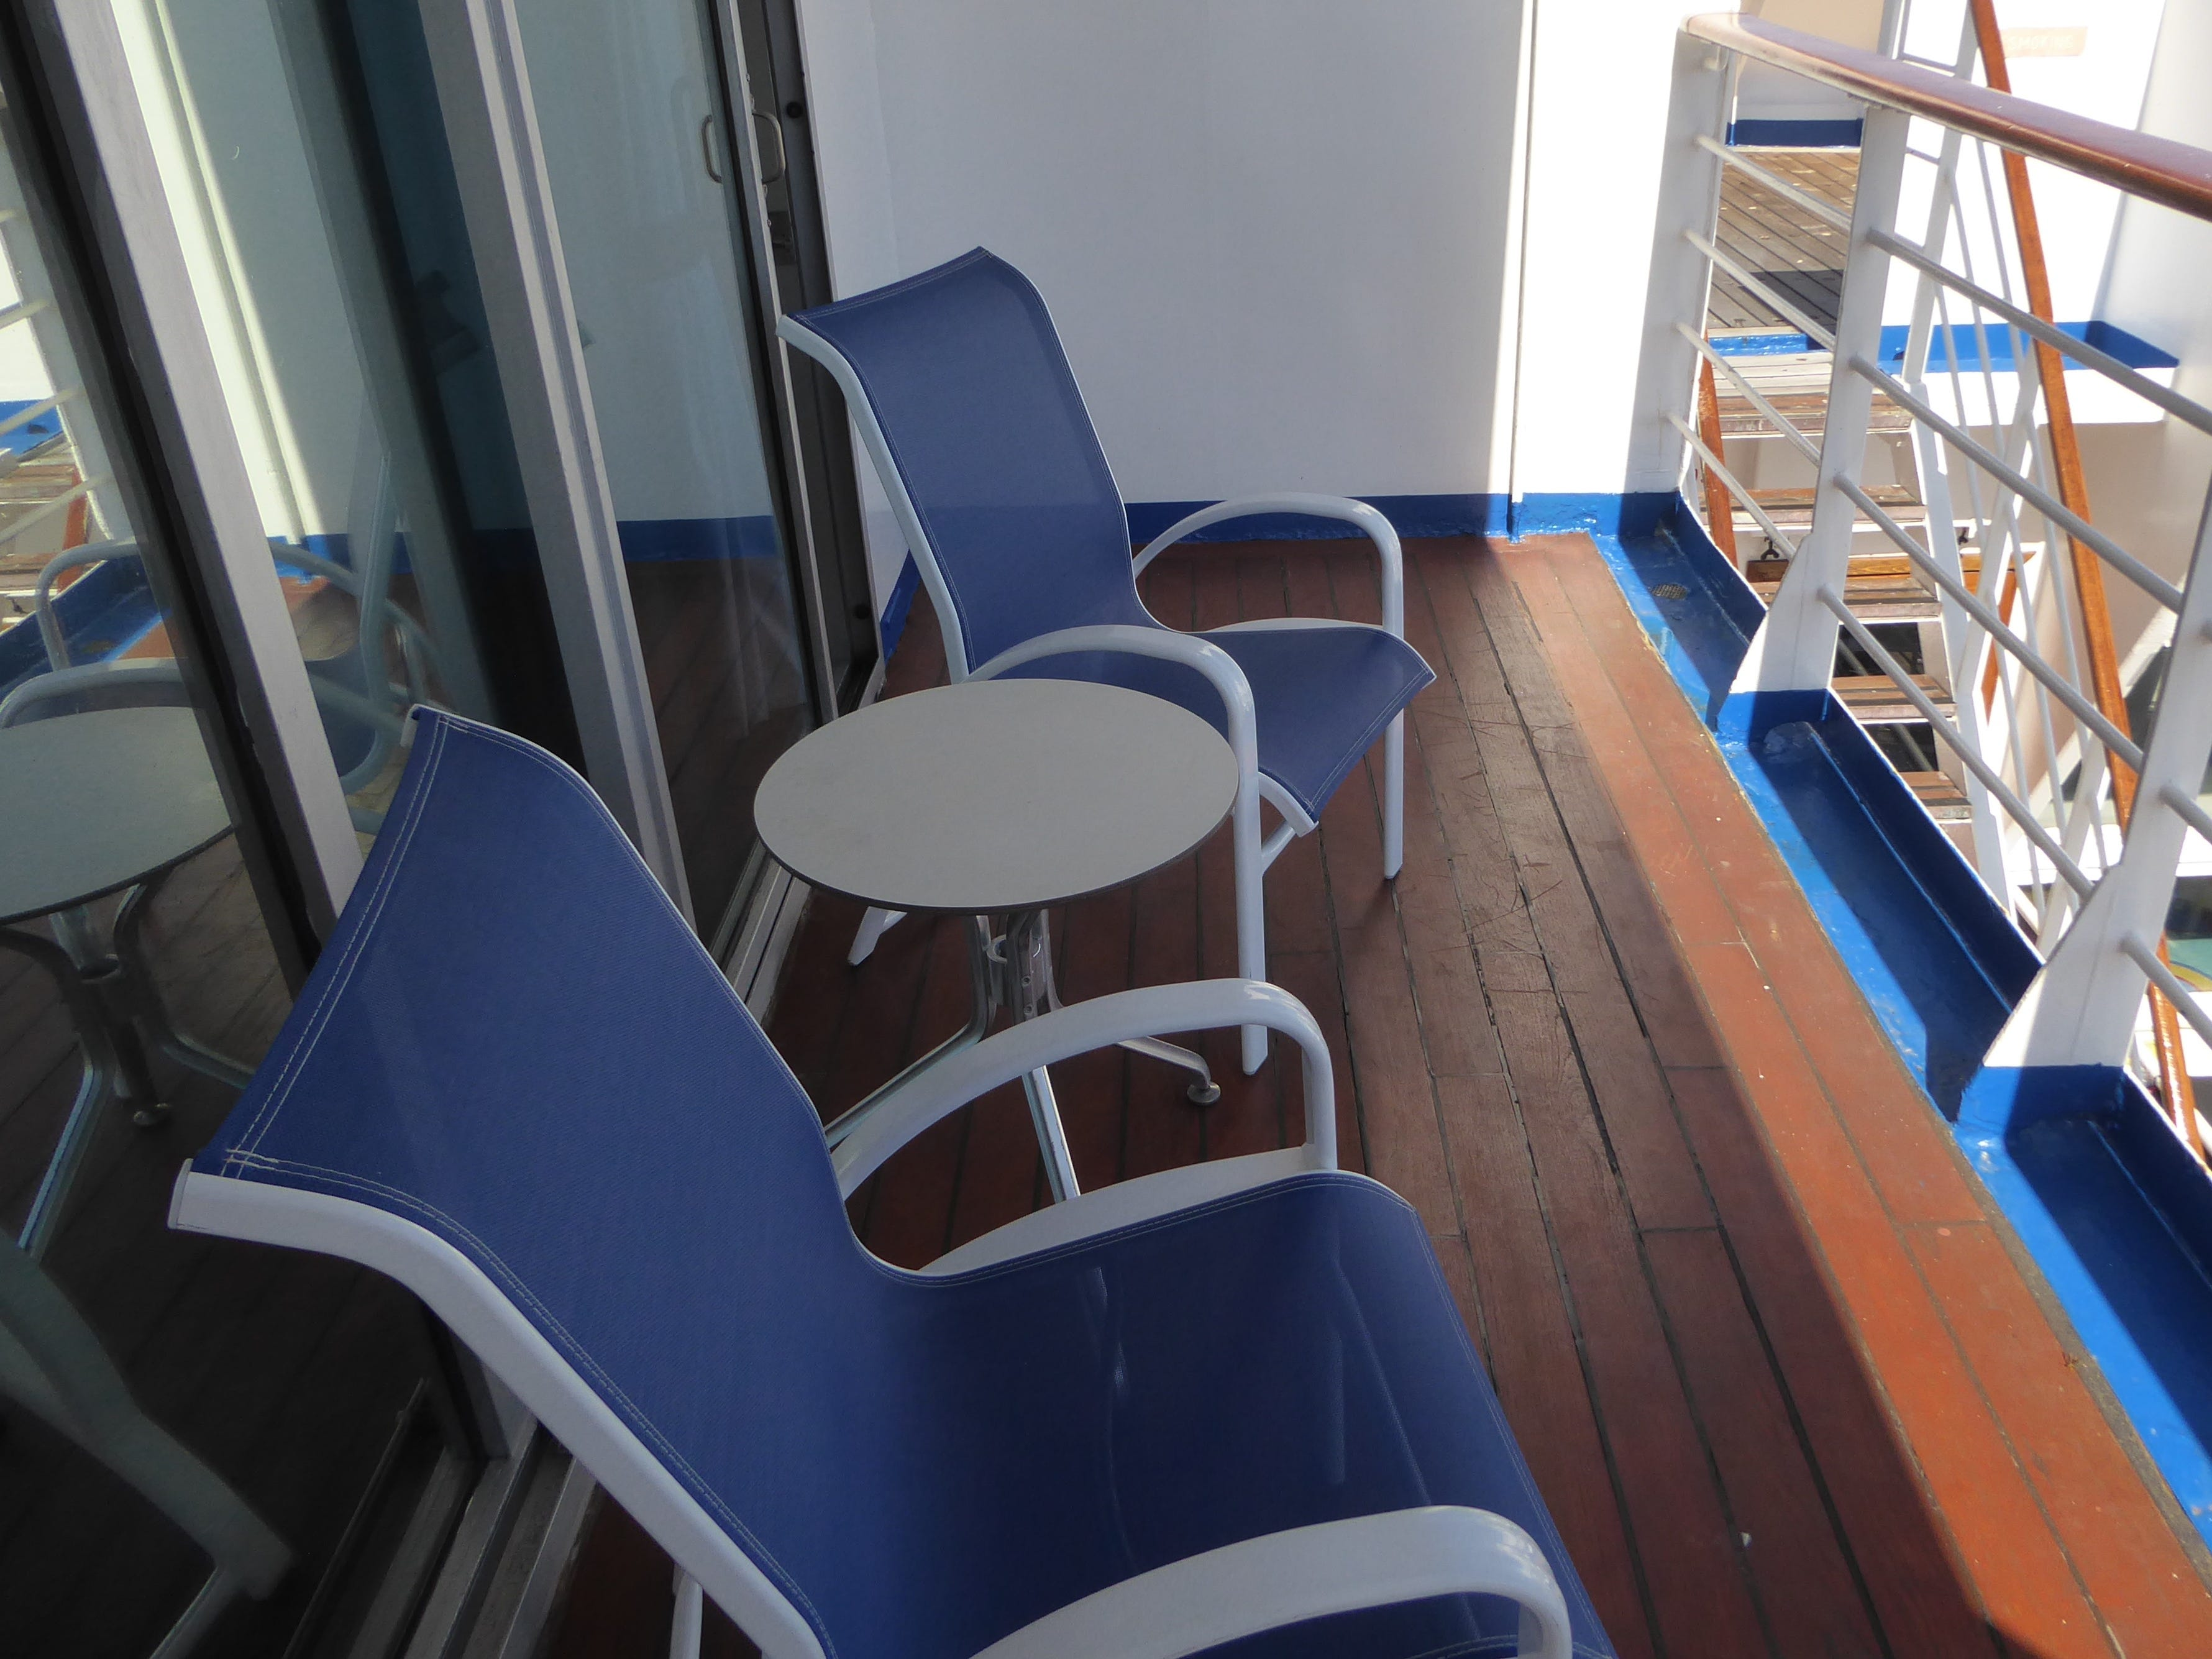 Deluxe Terrace Suite balconies are lined in teak and have space for a pair of chairs and a small table.